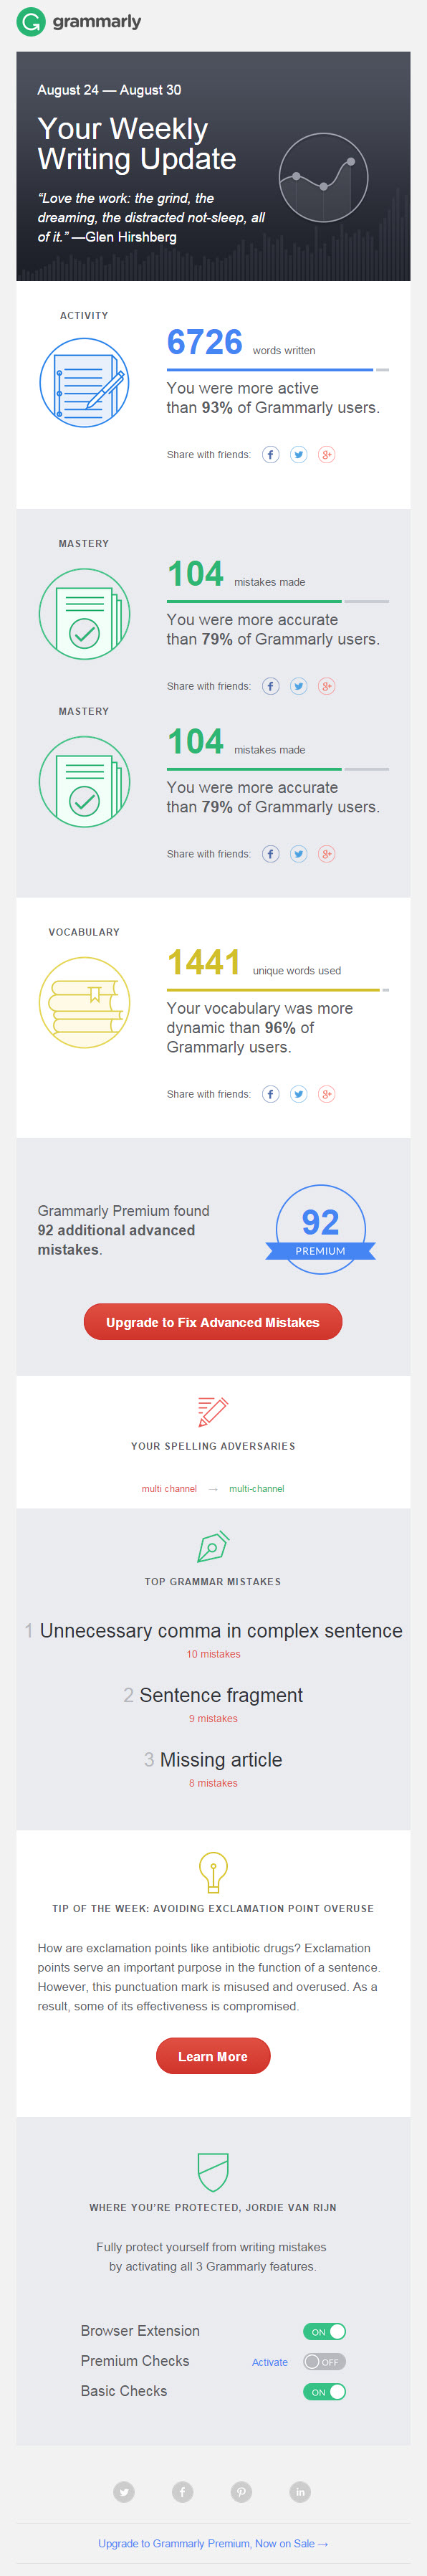 Grammarly Insights – Your Weekly Progress Report & Tips